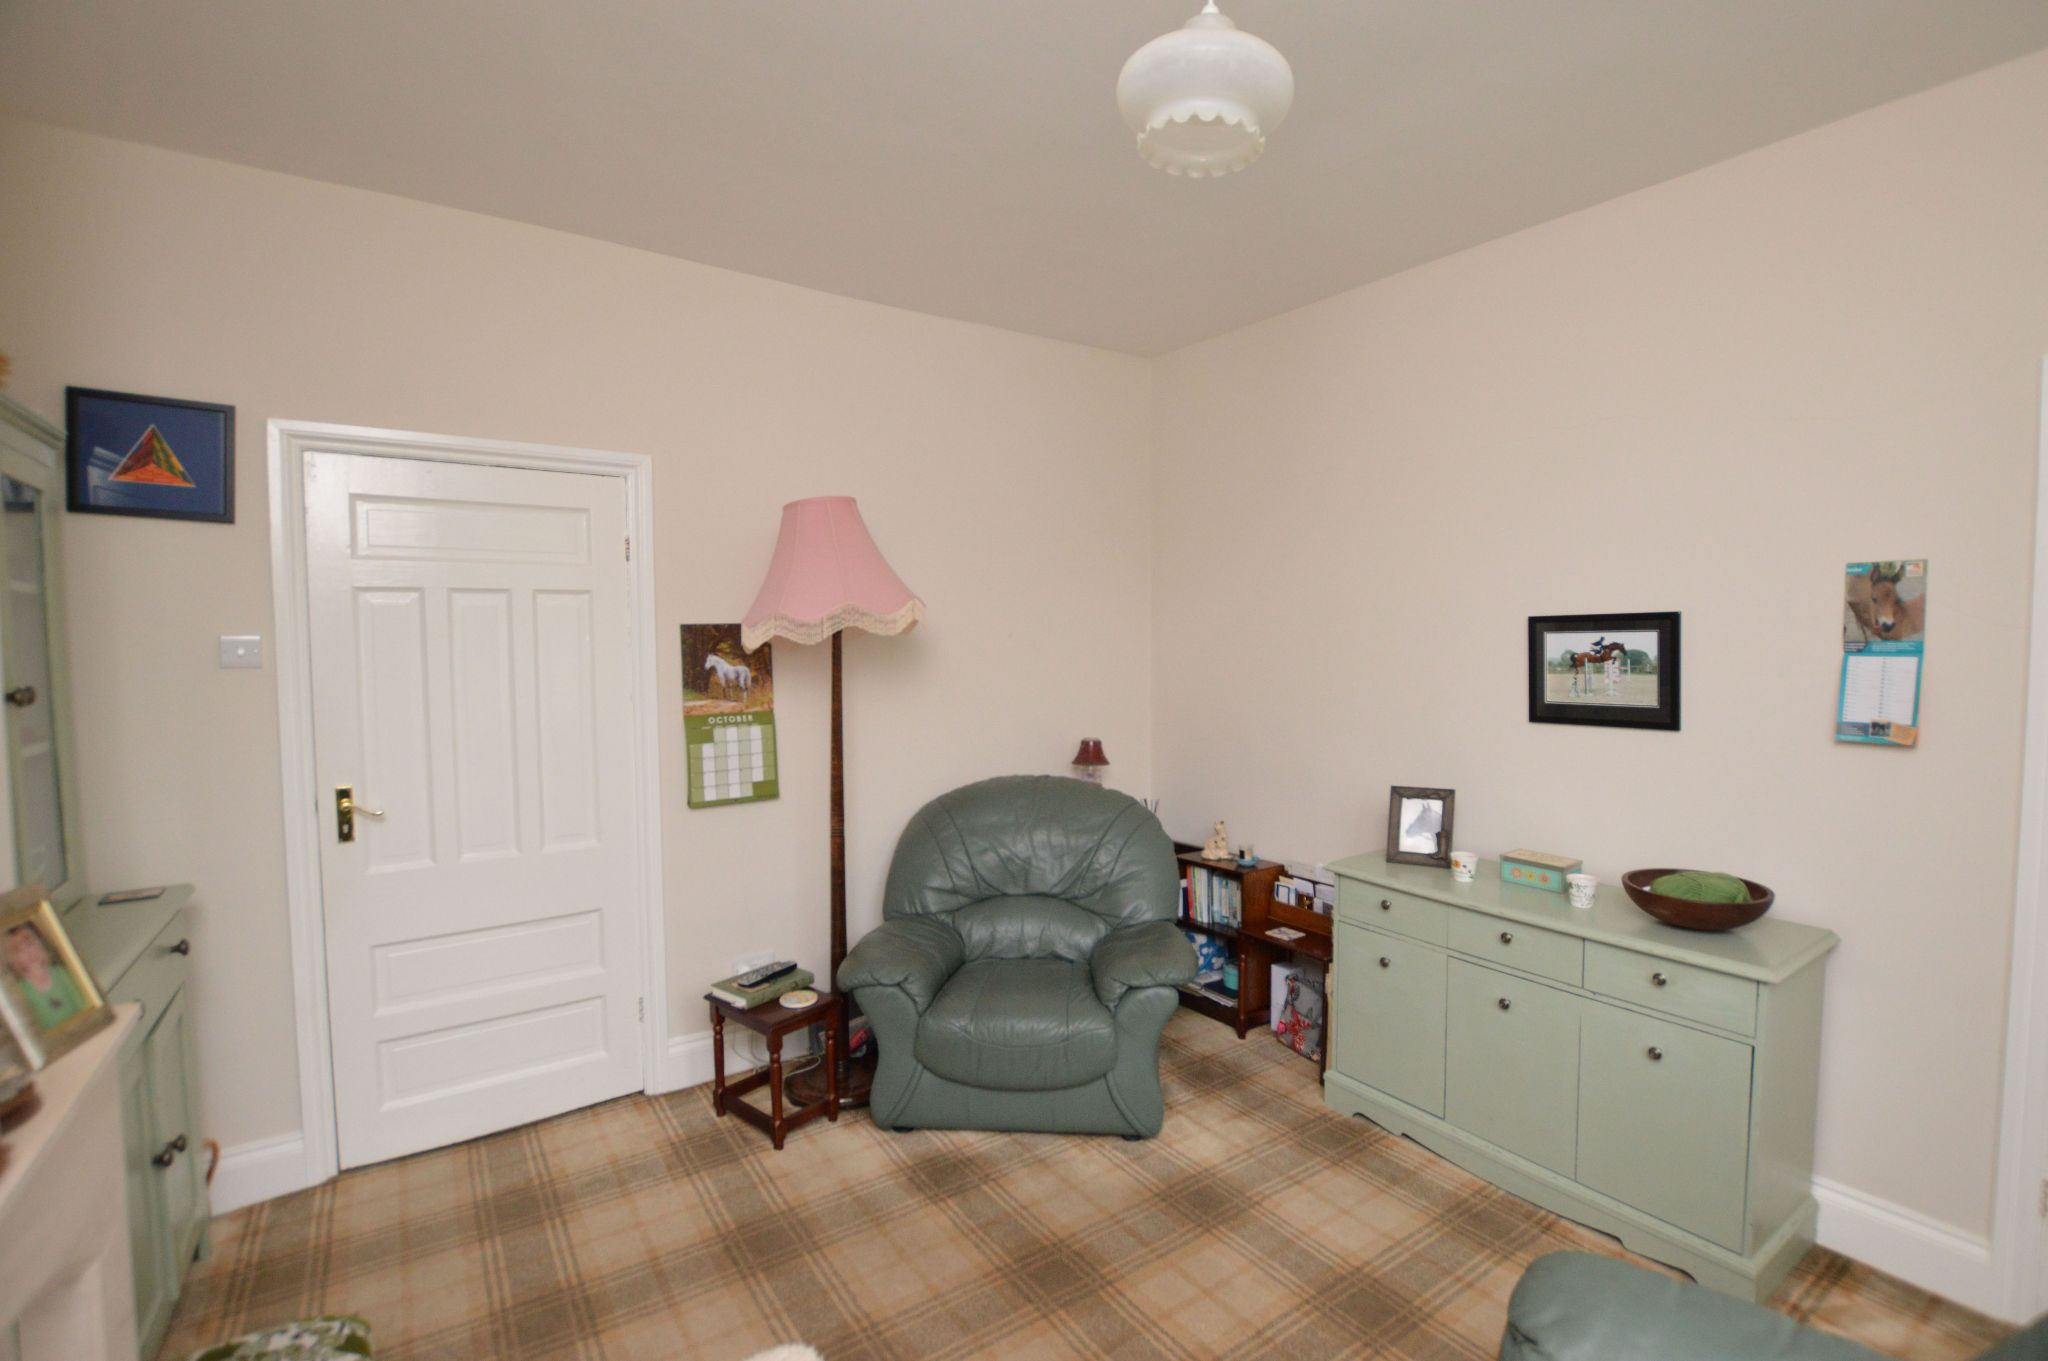 4 bedroom detached house For Sale in Abergele - Reception Room View 2